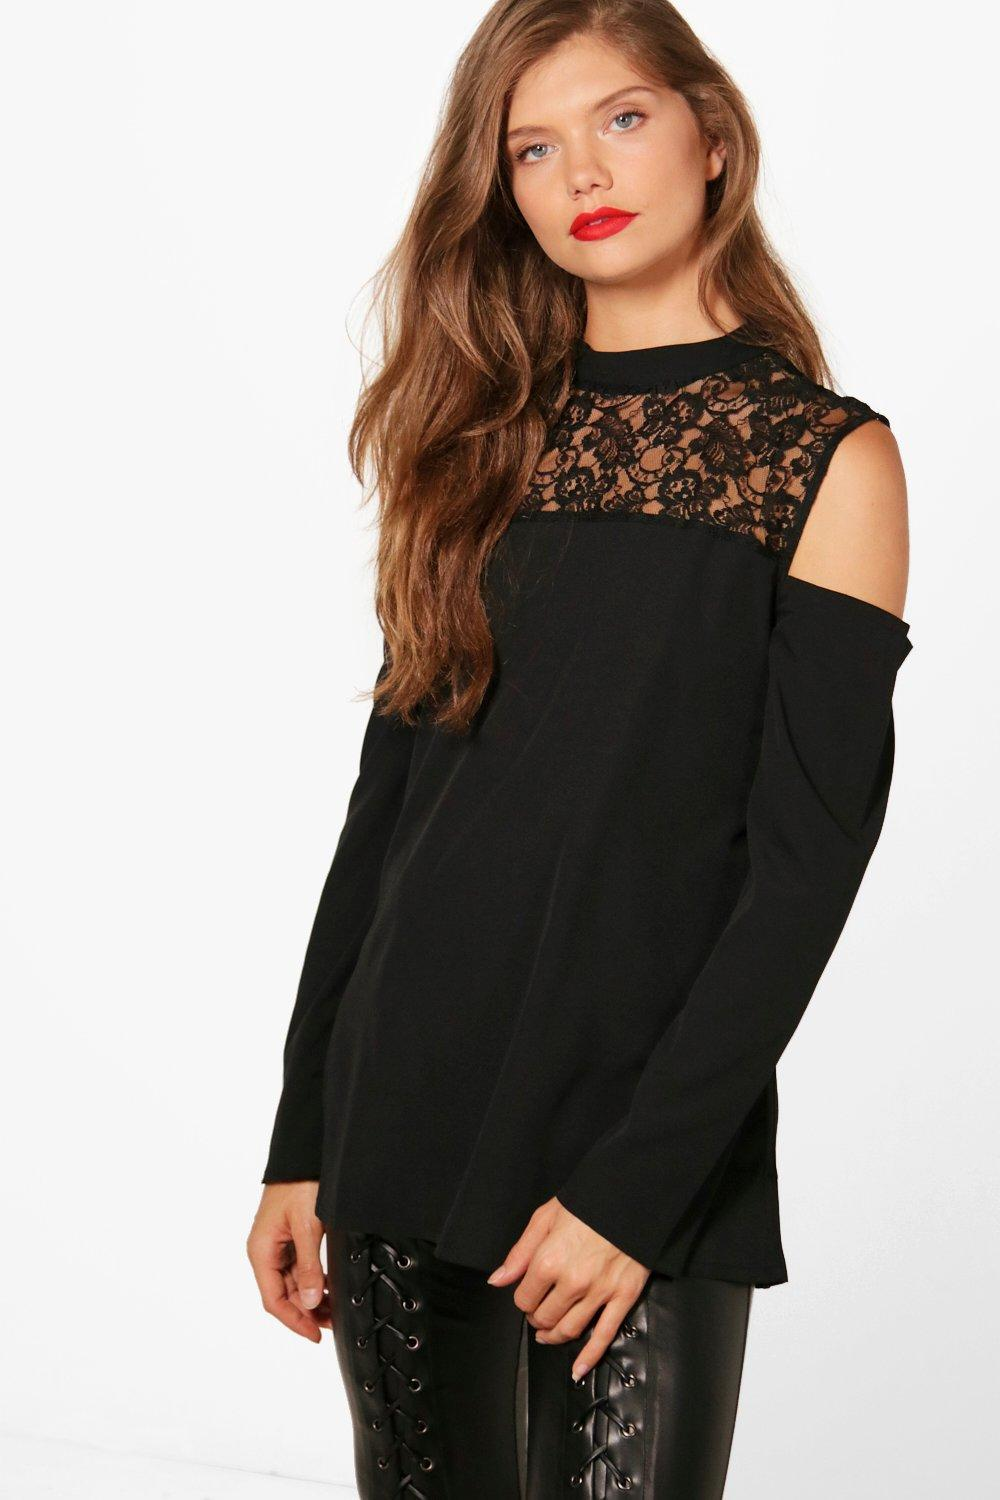 dd88df0537e98 Tall Ebele Lace High Neck Cold Shoulder Top. Hover to zoom